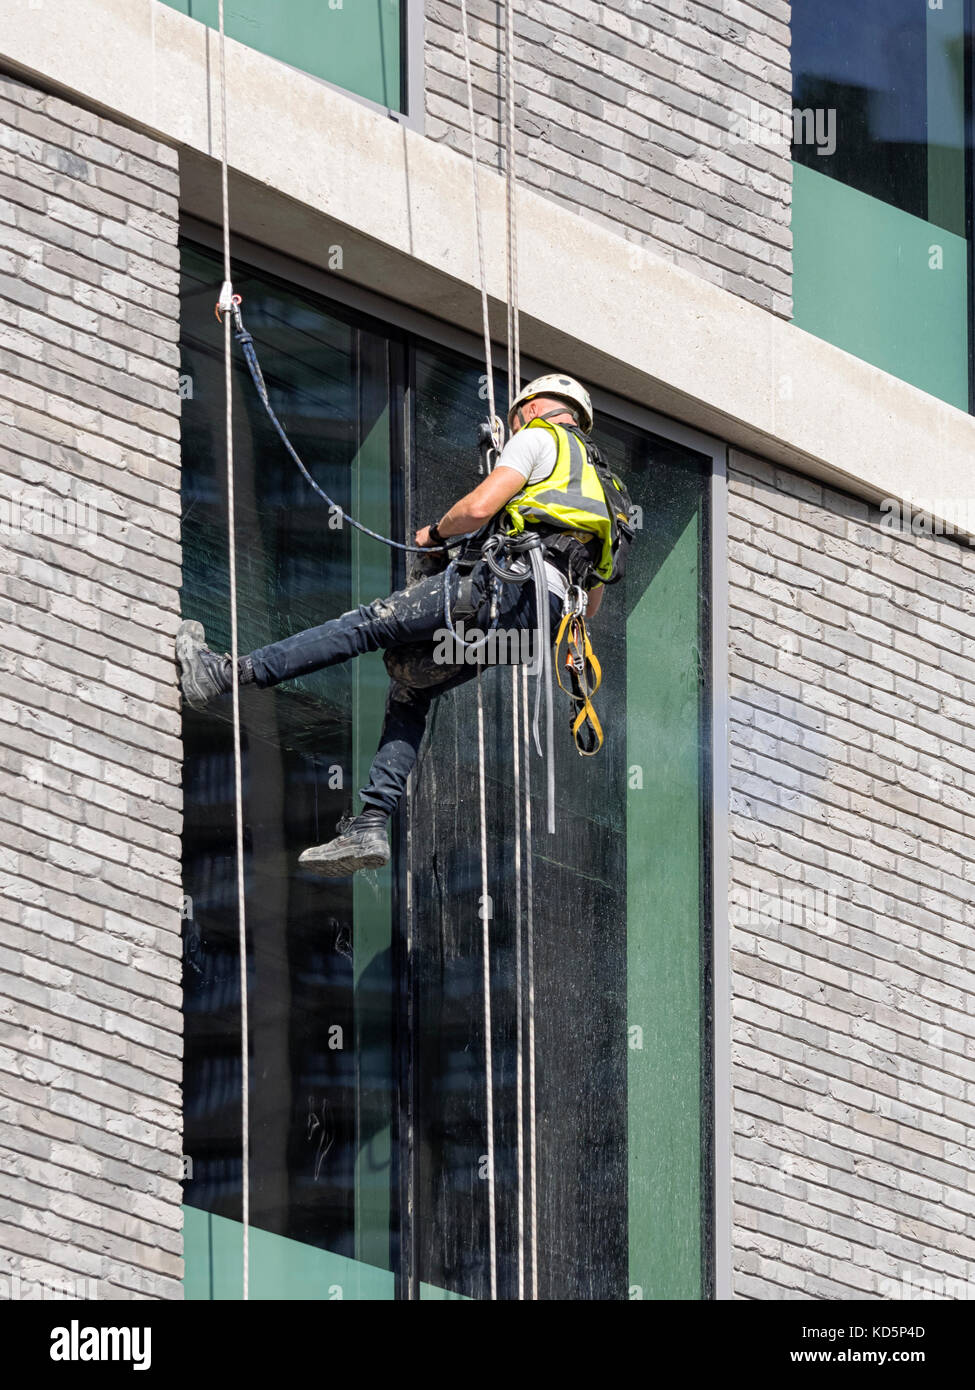 LONDON:  Builder working on Windows of Tall Office Building using safety Equipment - Stock Image